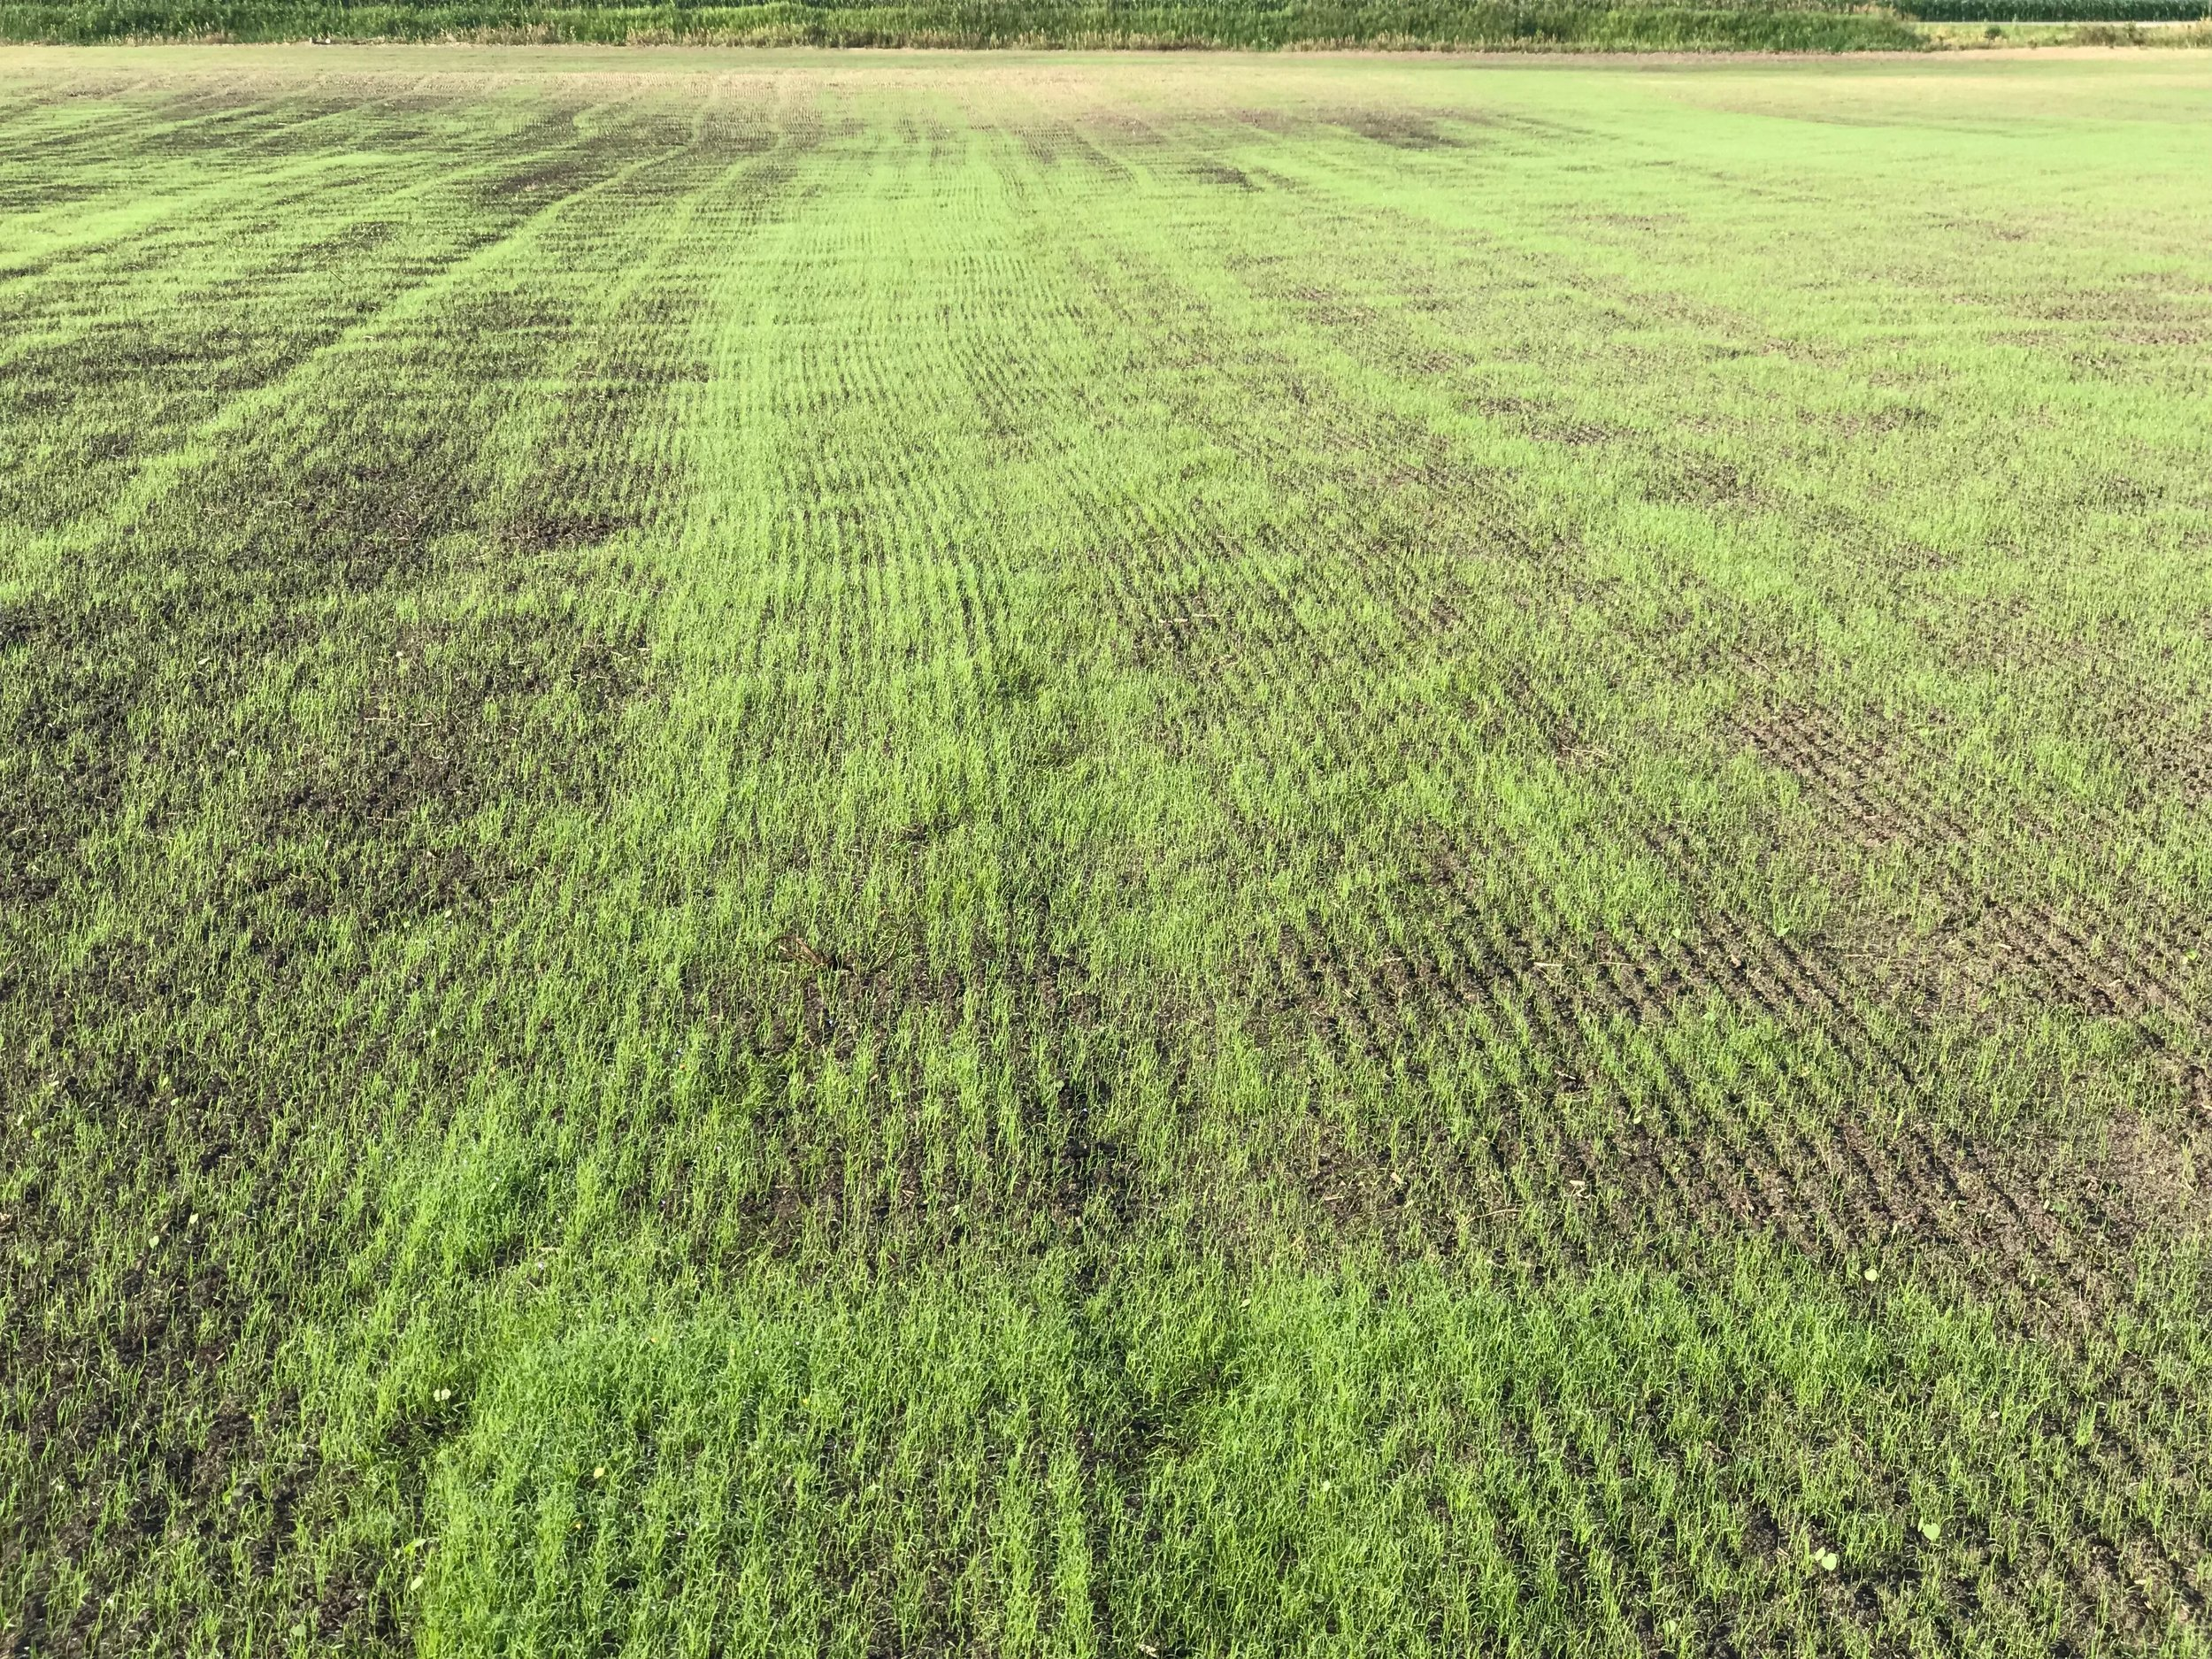 2018.6.28 - Teff - Bremen - 13 days after planting5.JPG